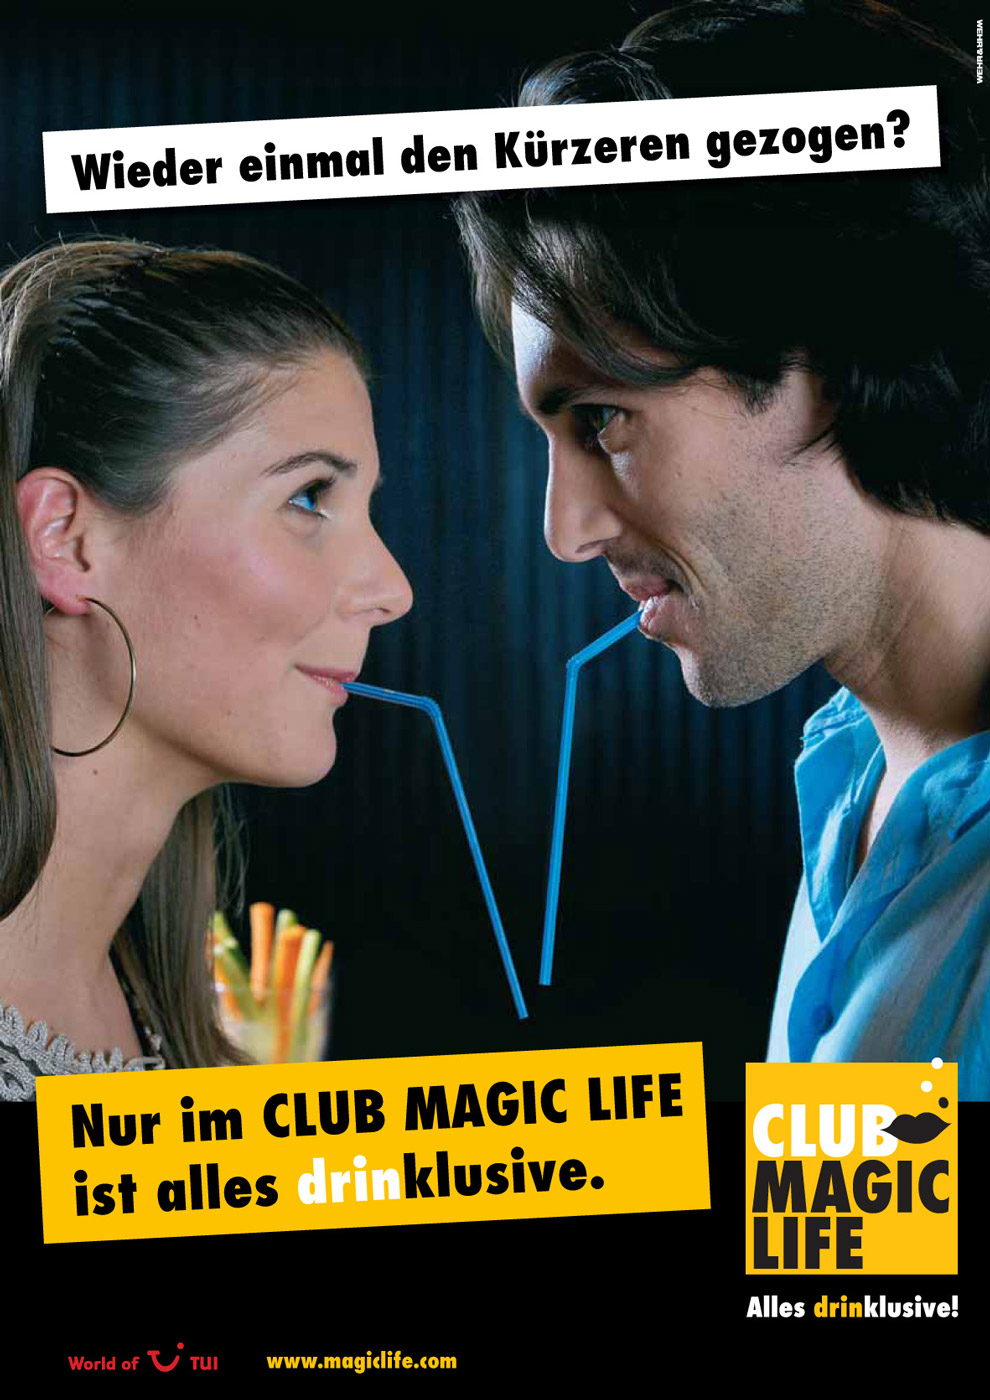 magiclife-kampagne-2